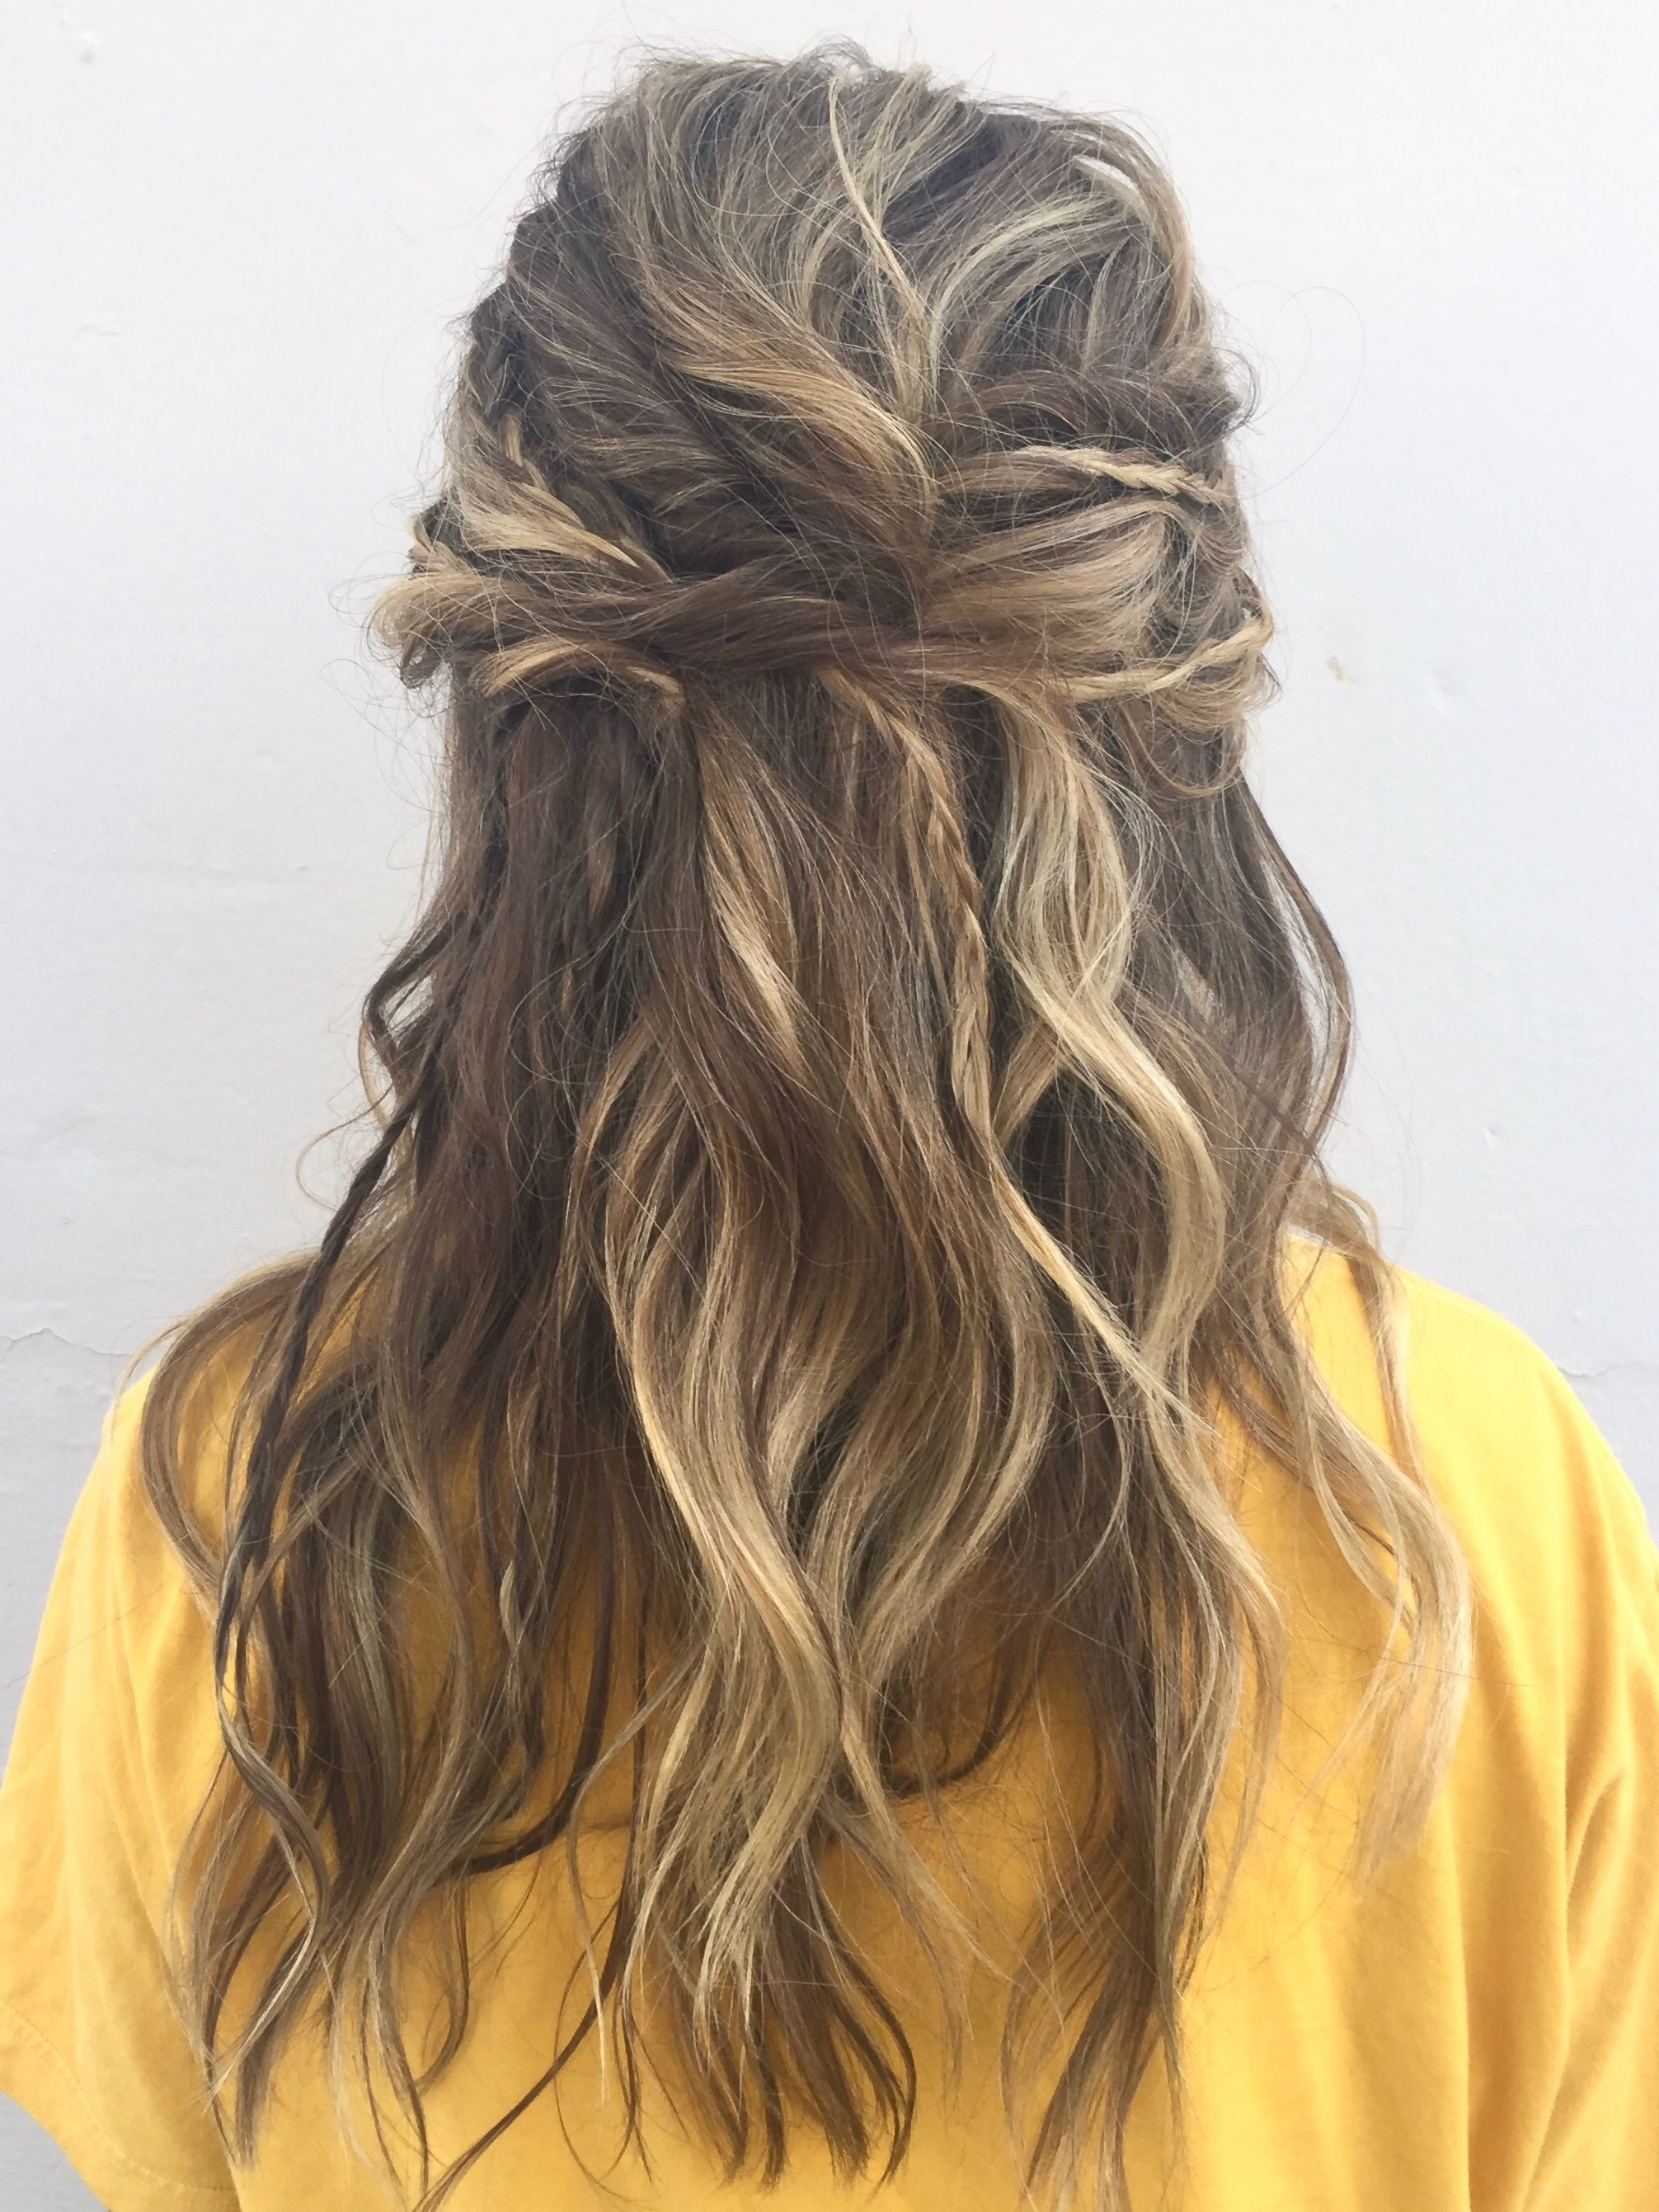 Trendy Half Up Half Down Boho Braided Hairstyles For Hairstyles : Boho Hair Prom Updo With Braids And Twists (Gallery 6 of 20)